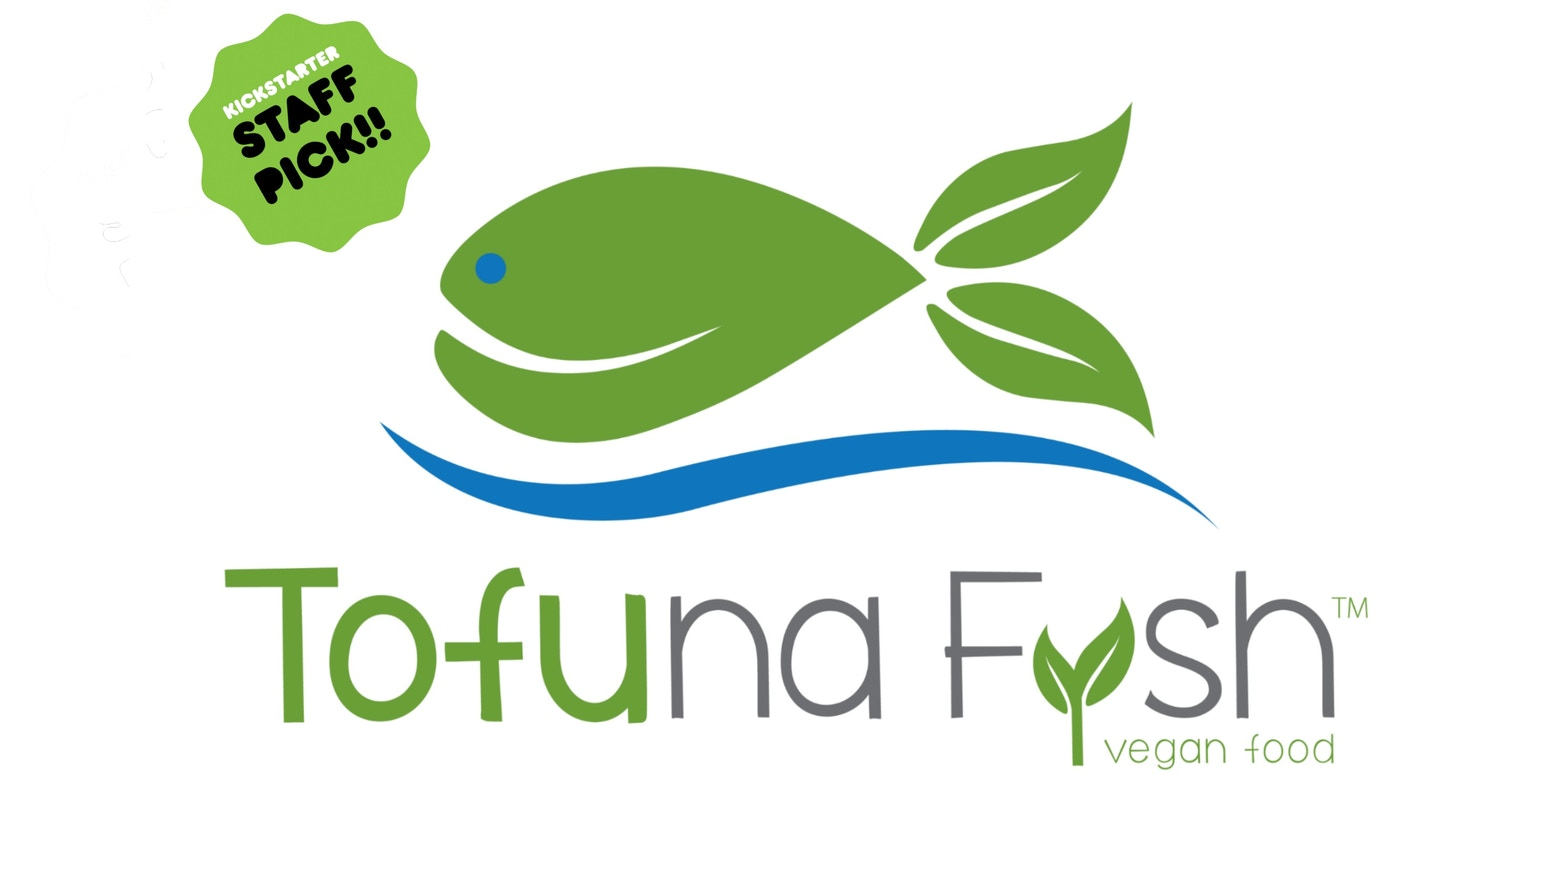 Finally, a unique & convenient vegan food option that's as versatile and durable as classic tuna fish. Made with jackfruit & seaweed!